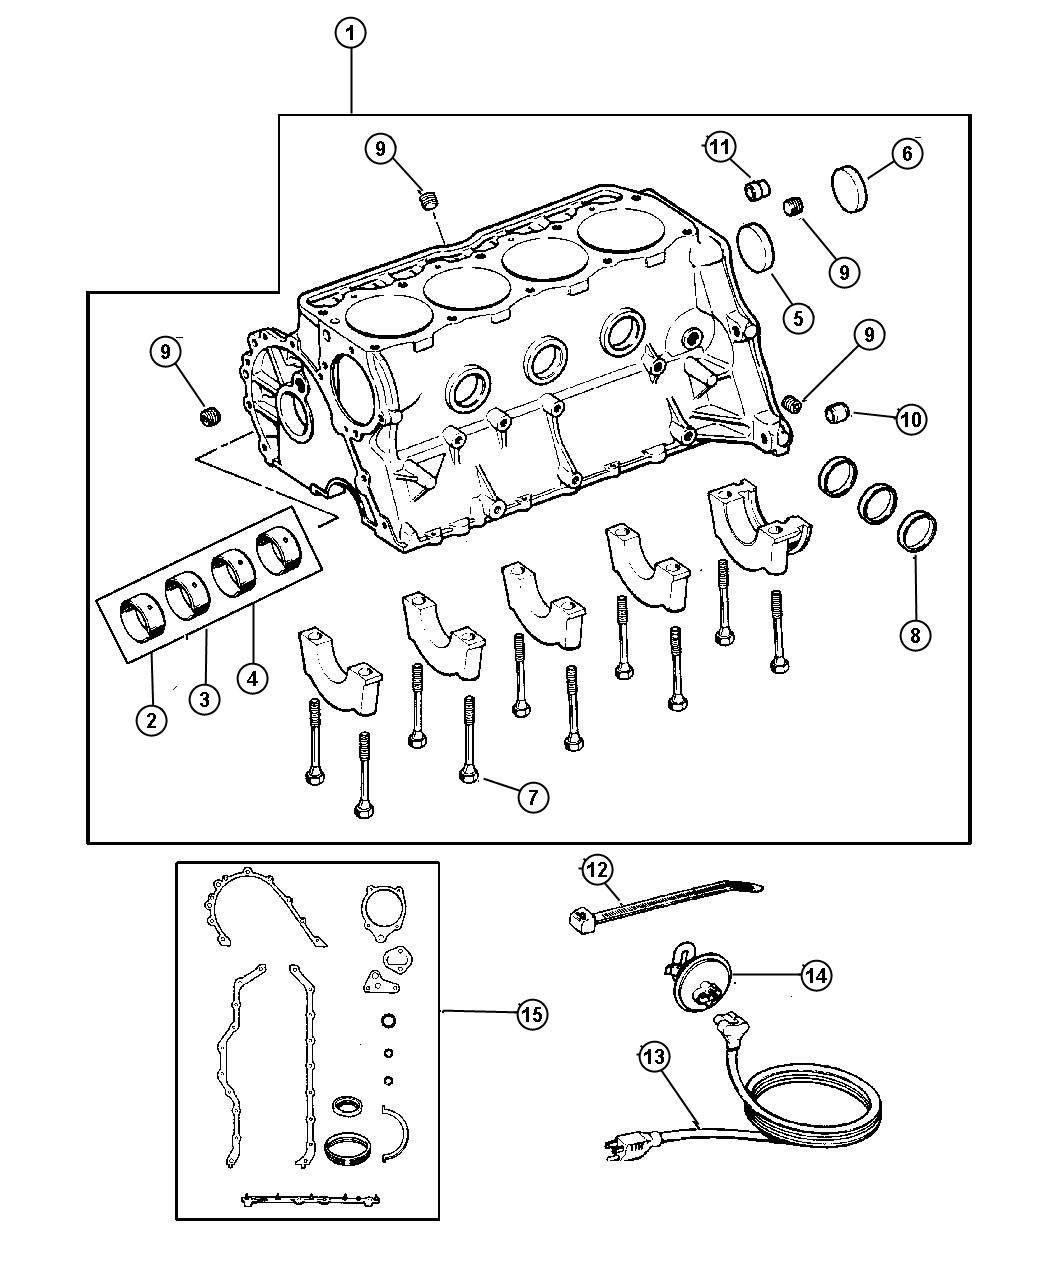 2009 Jeep Liberty Plug. Cylinder block. Rubber, rubber